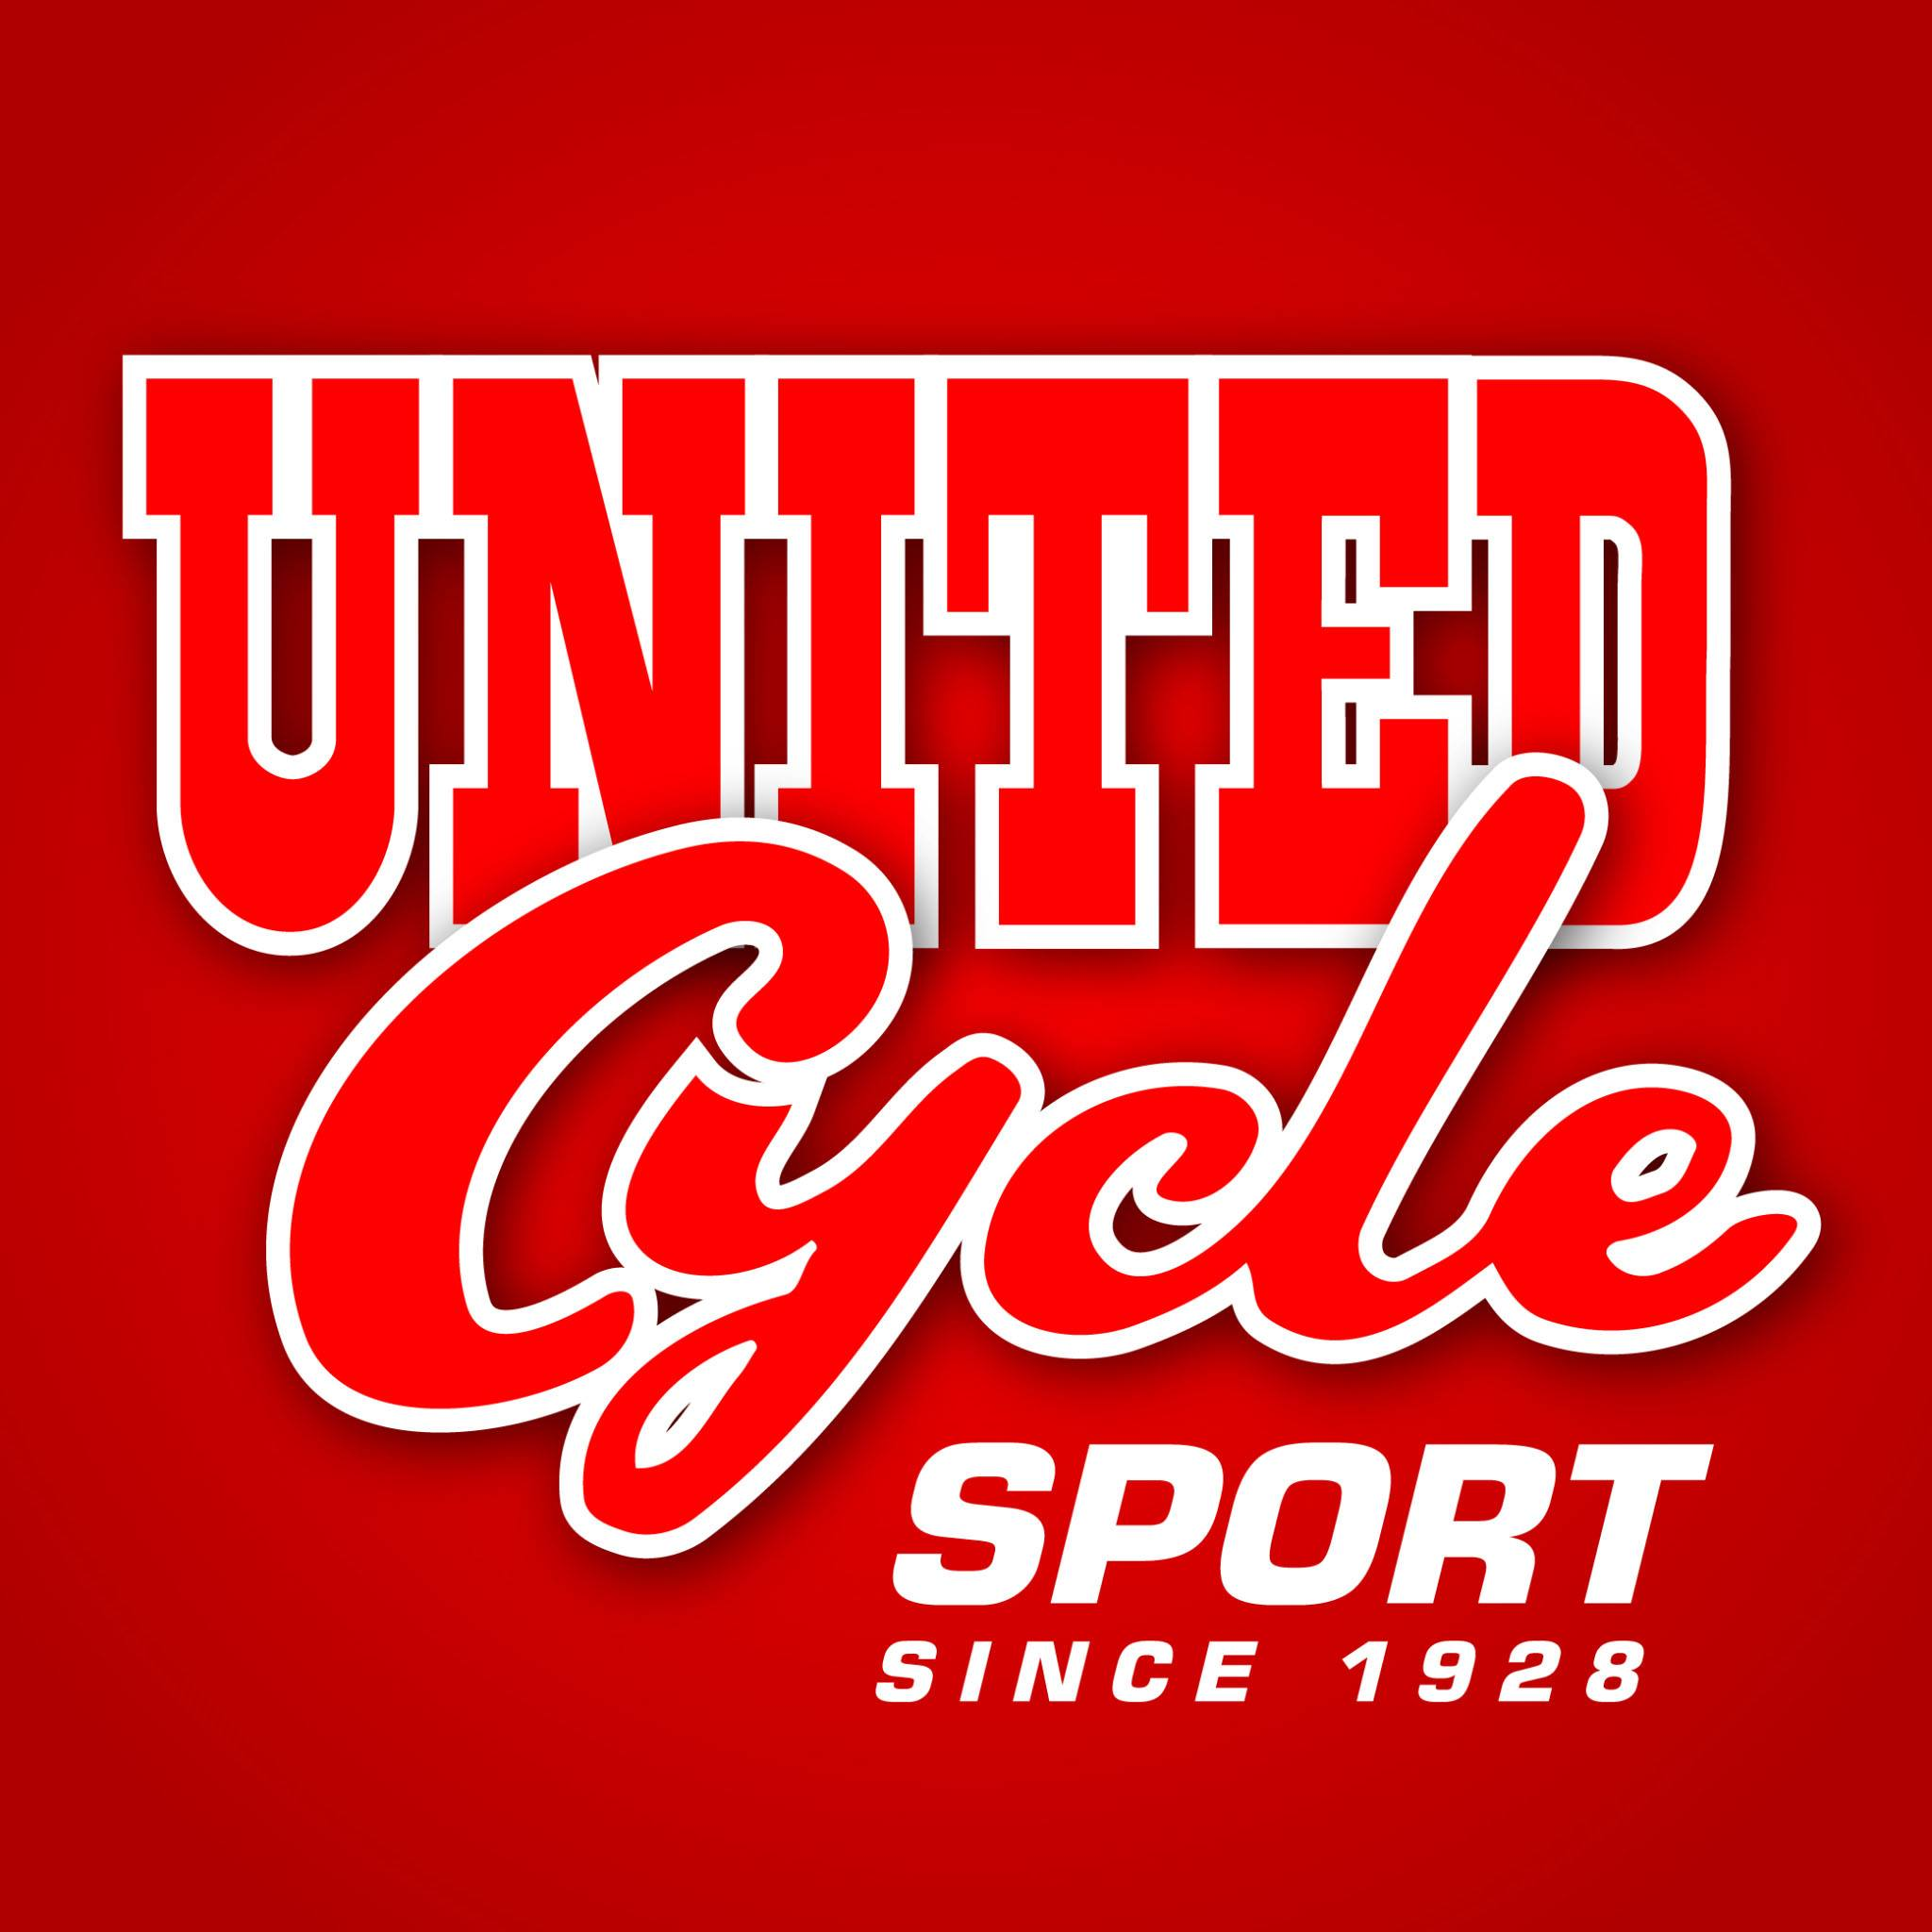 United Sport & Cycle